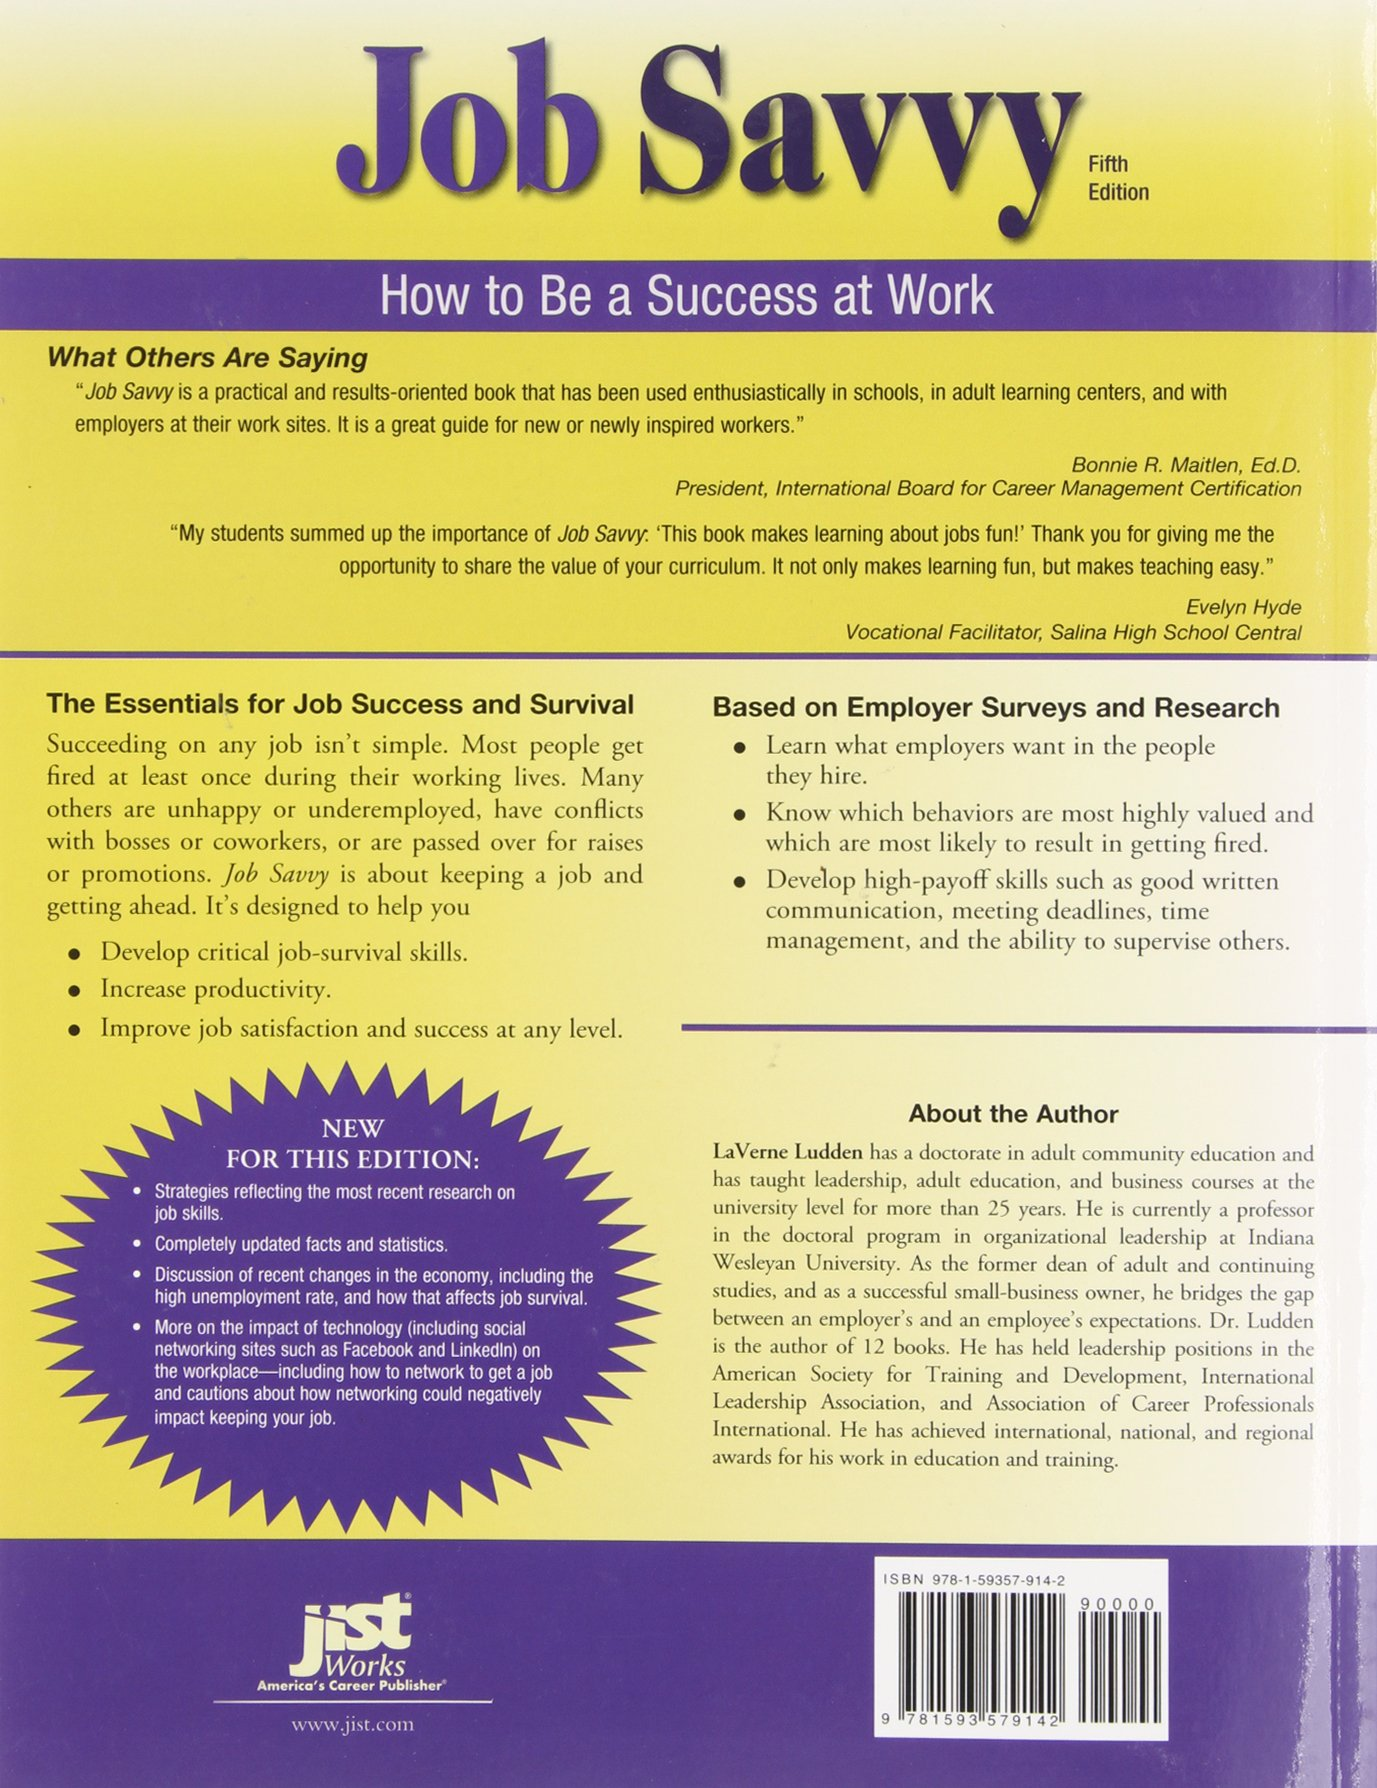 job savvy how to be a success at work laverne l ludden job savvy how to be a success at work laverne l ludden 9781593579142 amazon com books